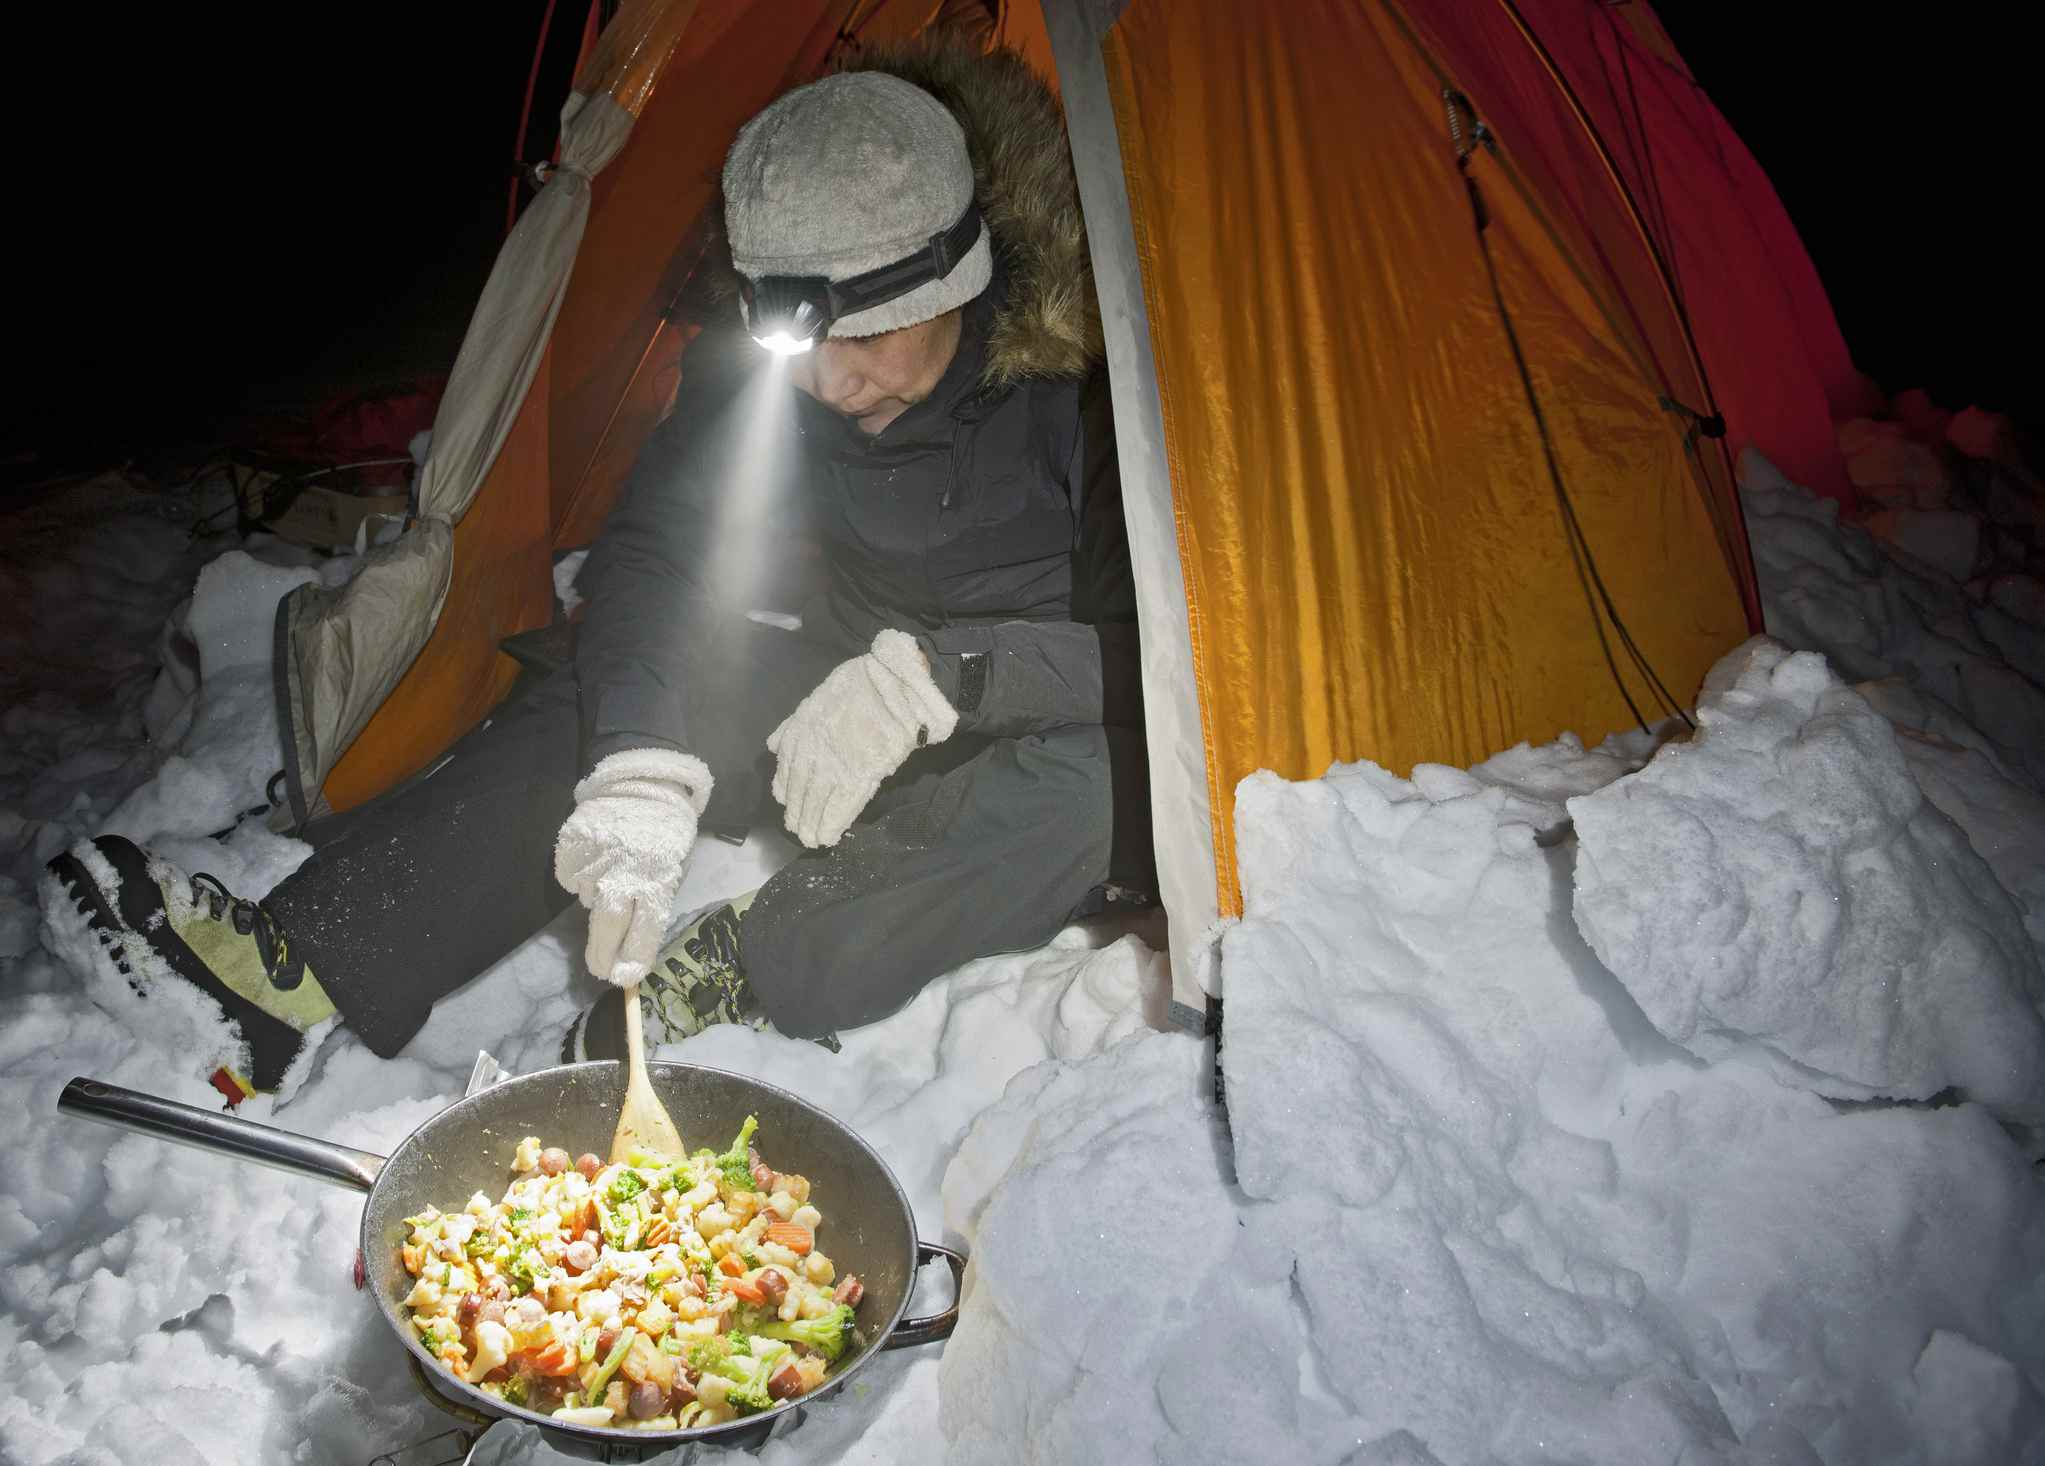 Mature woman cooking outside tent at night, Langjokull glacier, South Iceland